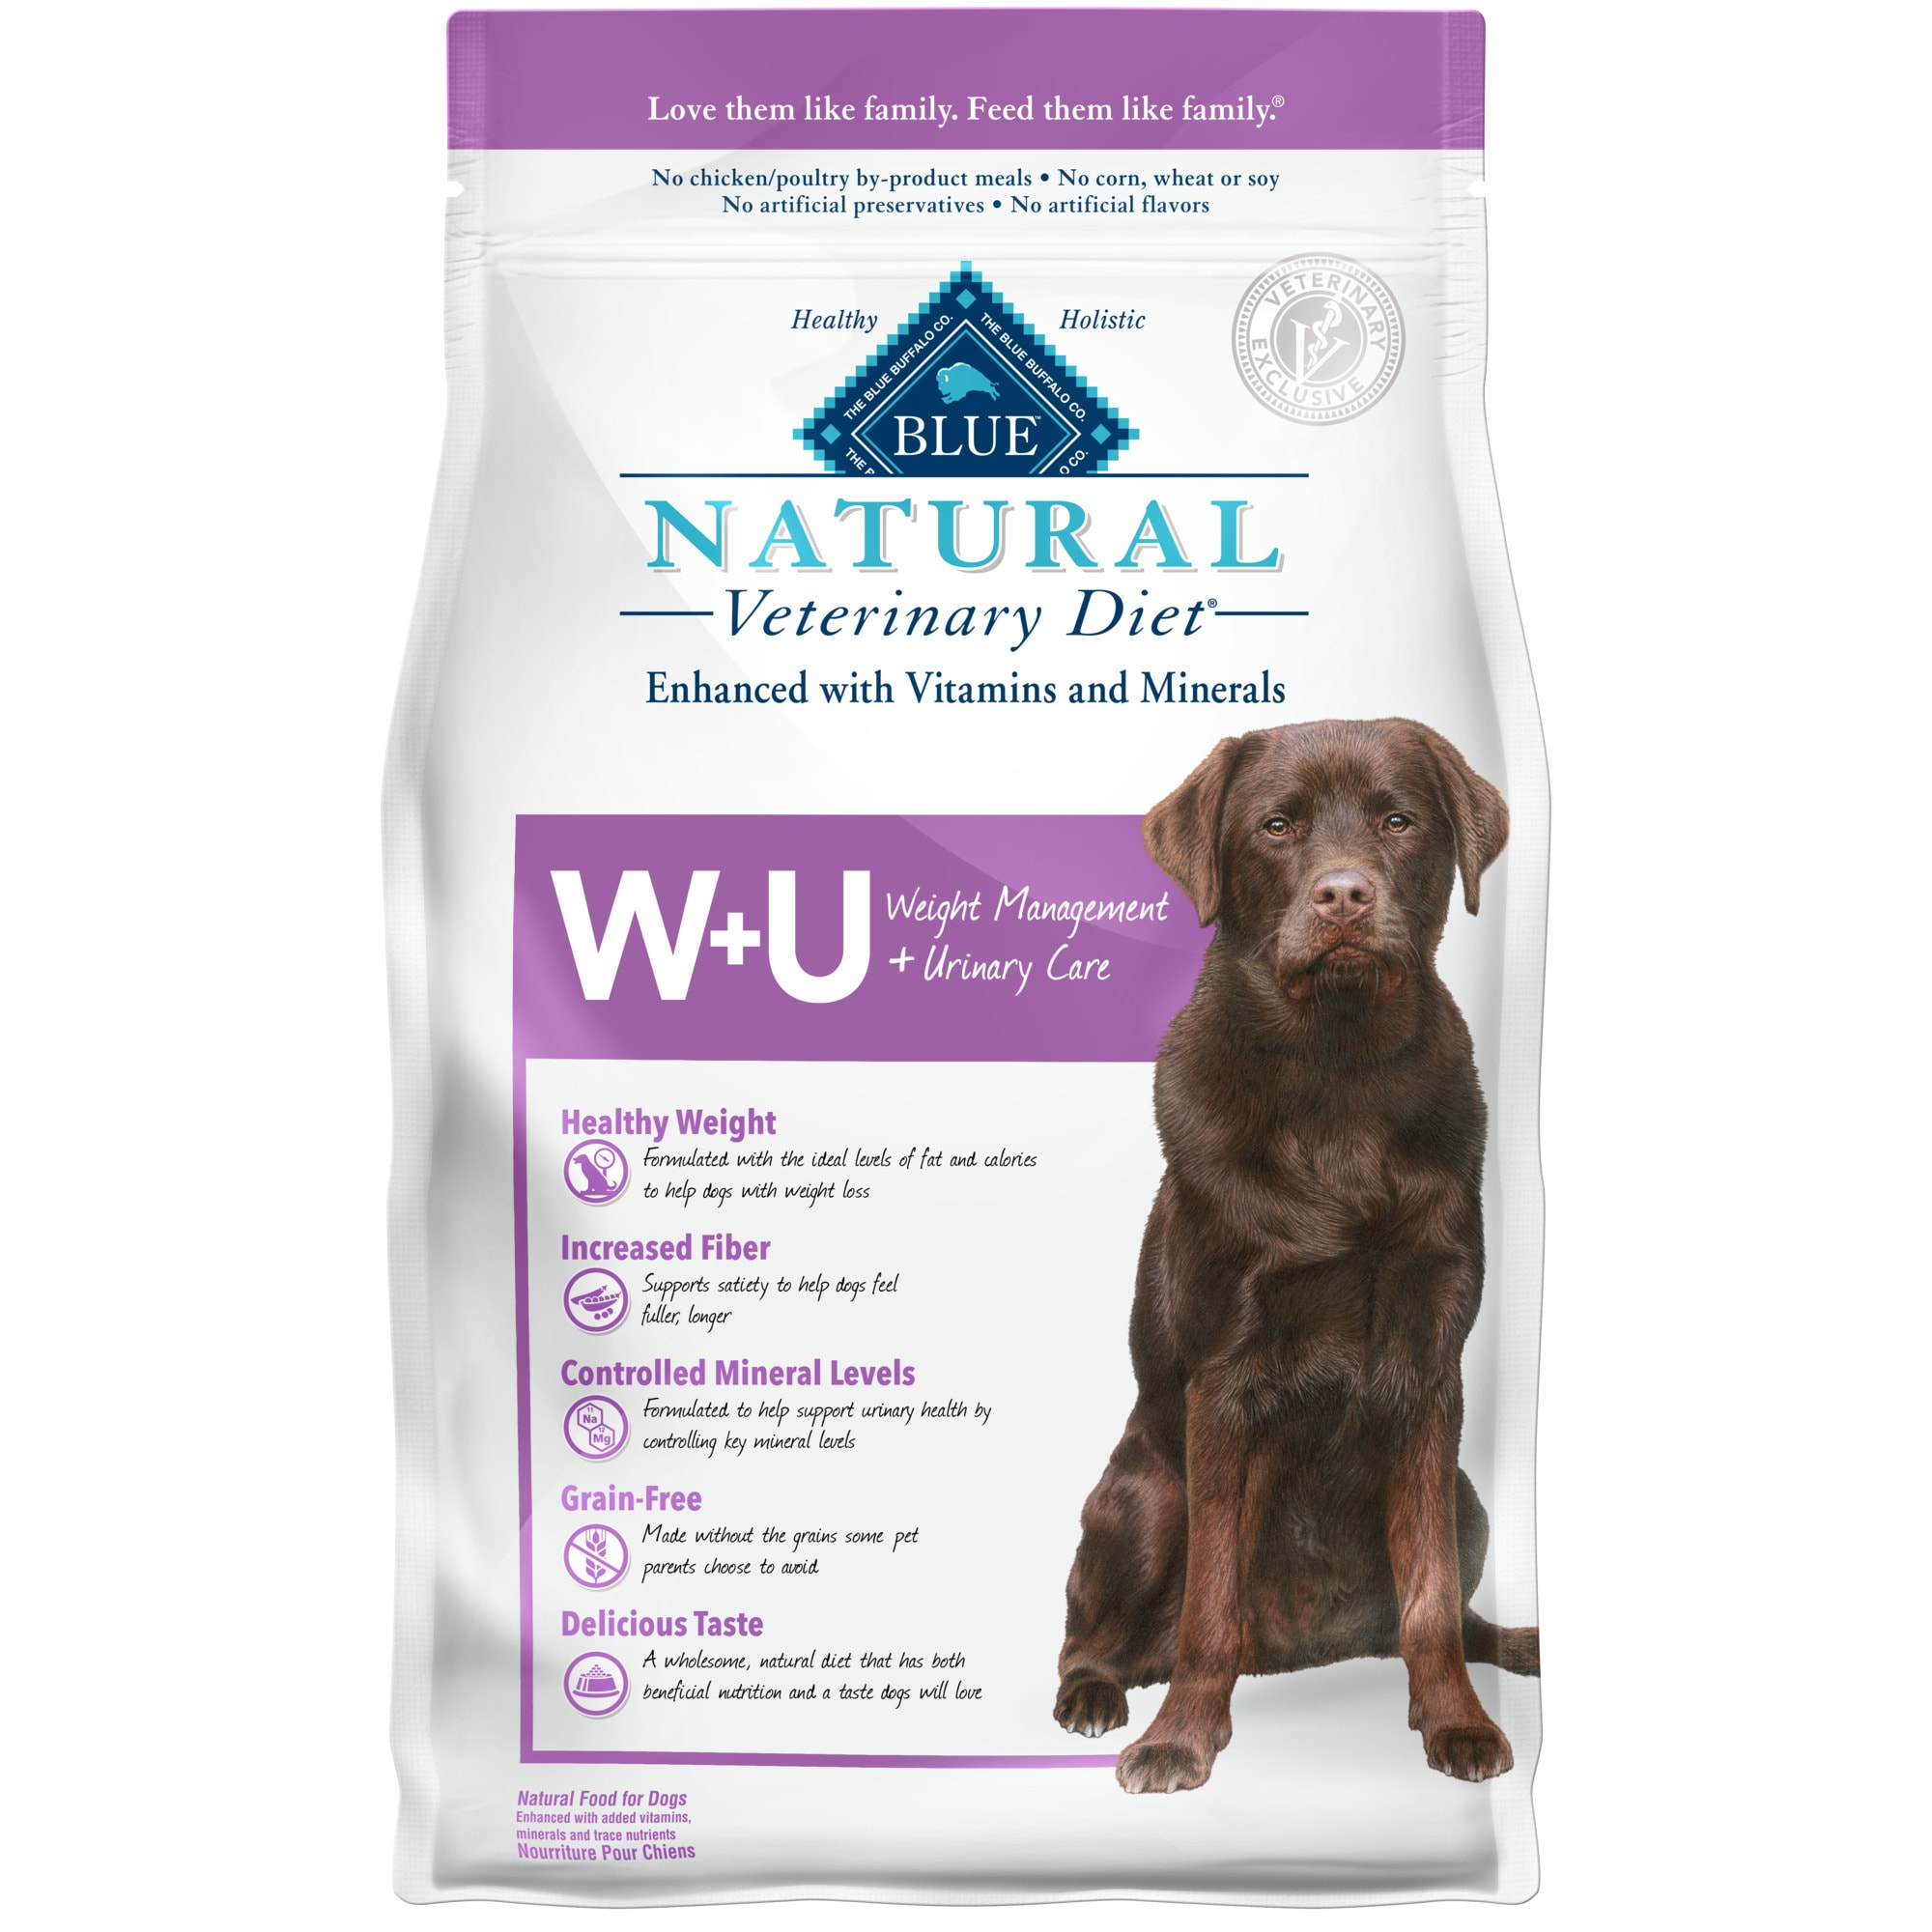 Blue Buffalo Natural Veterinary Diet W+U Weight Management + Urinary Care Chicken Dry Dog Food, 6 lbs.